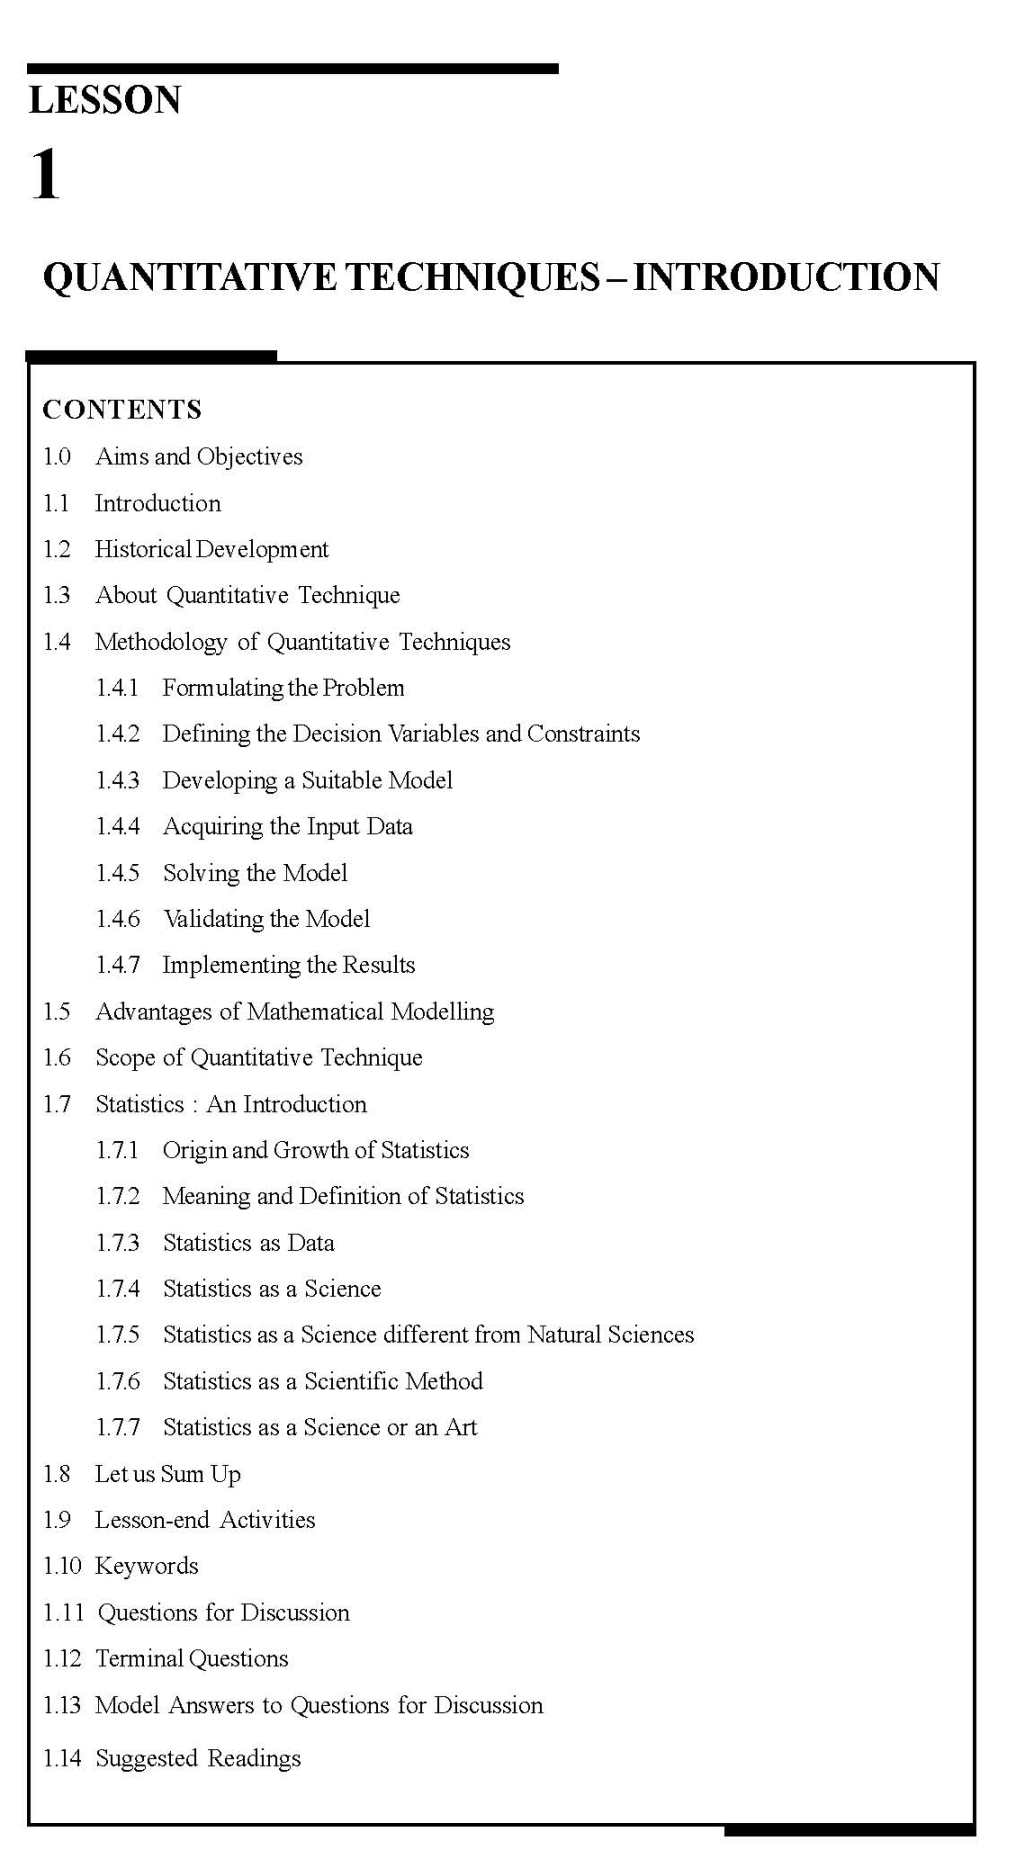 MBA Quantitative Techniques Notes PDF - 2018 2019 EduVark